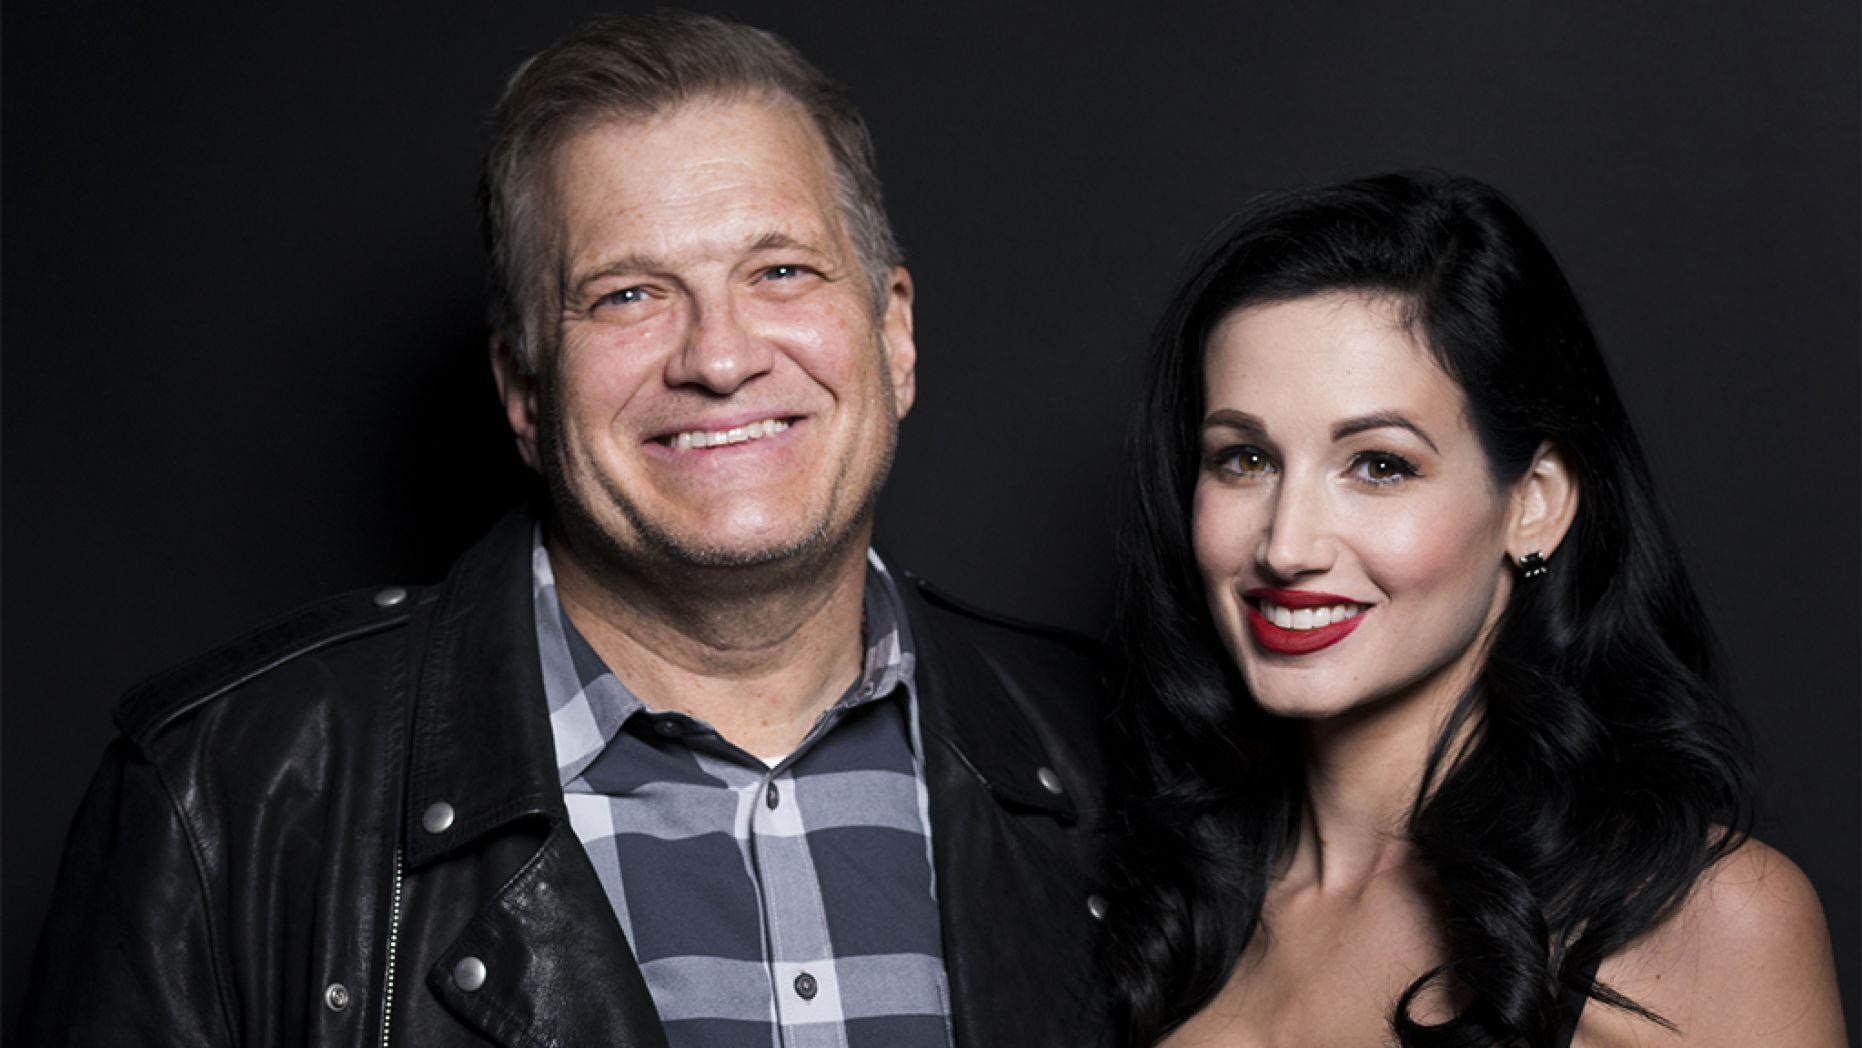 Dr. Amie Harwick, seen here with Drew Carey in December 2017, was murdered in Los Angeles over the weekend, police said.